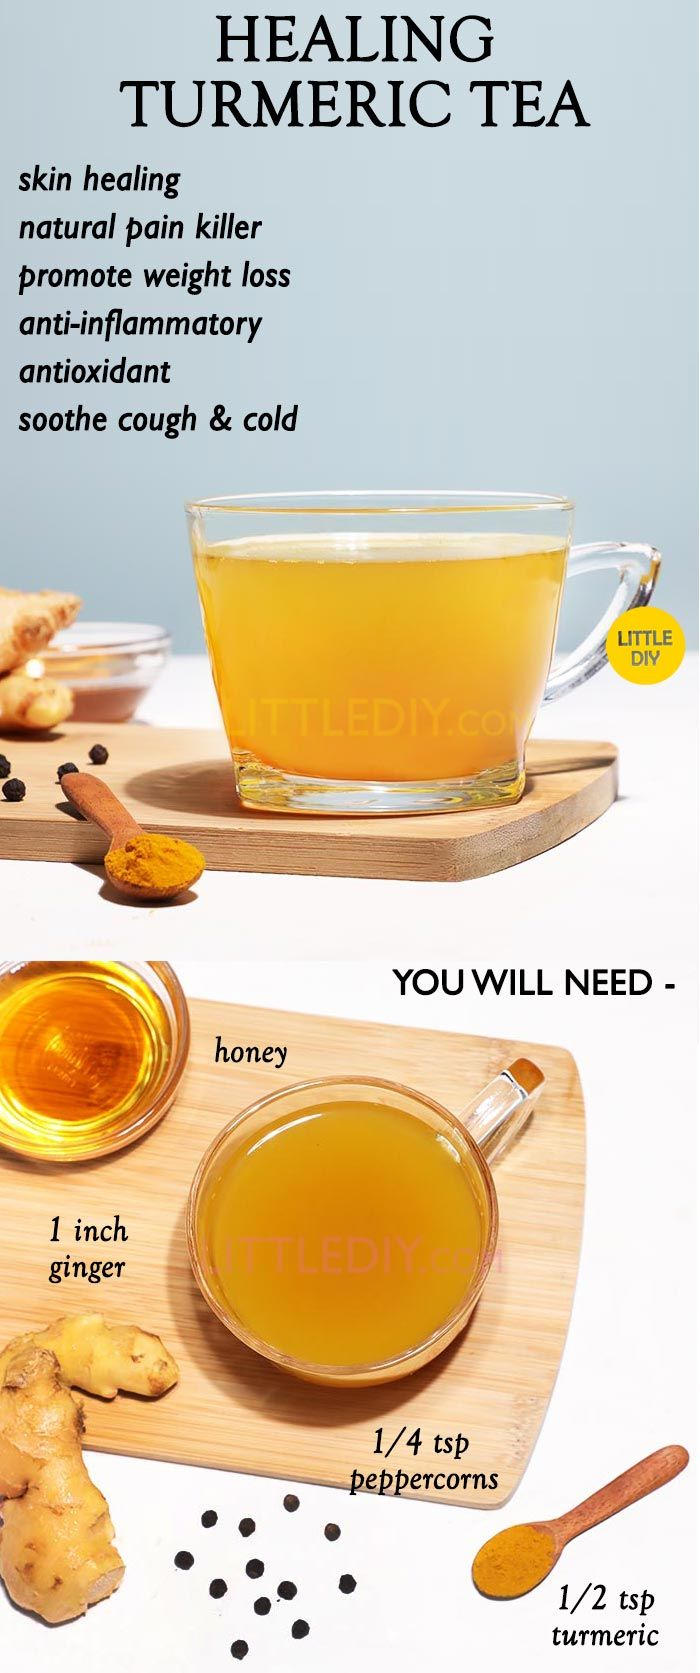 Healing Turmeric Tea Recipe and Benefits - LITTLE DIY #antiinflamatoryrecipes